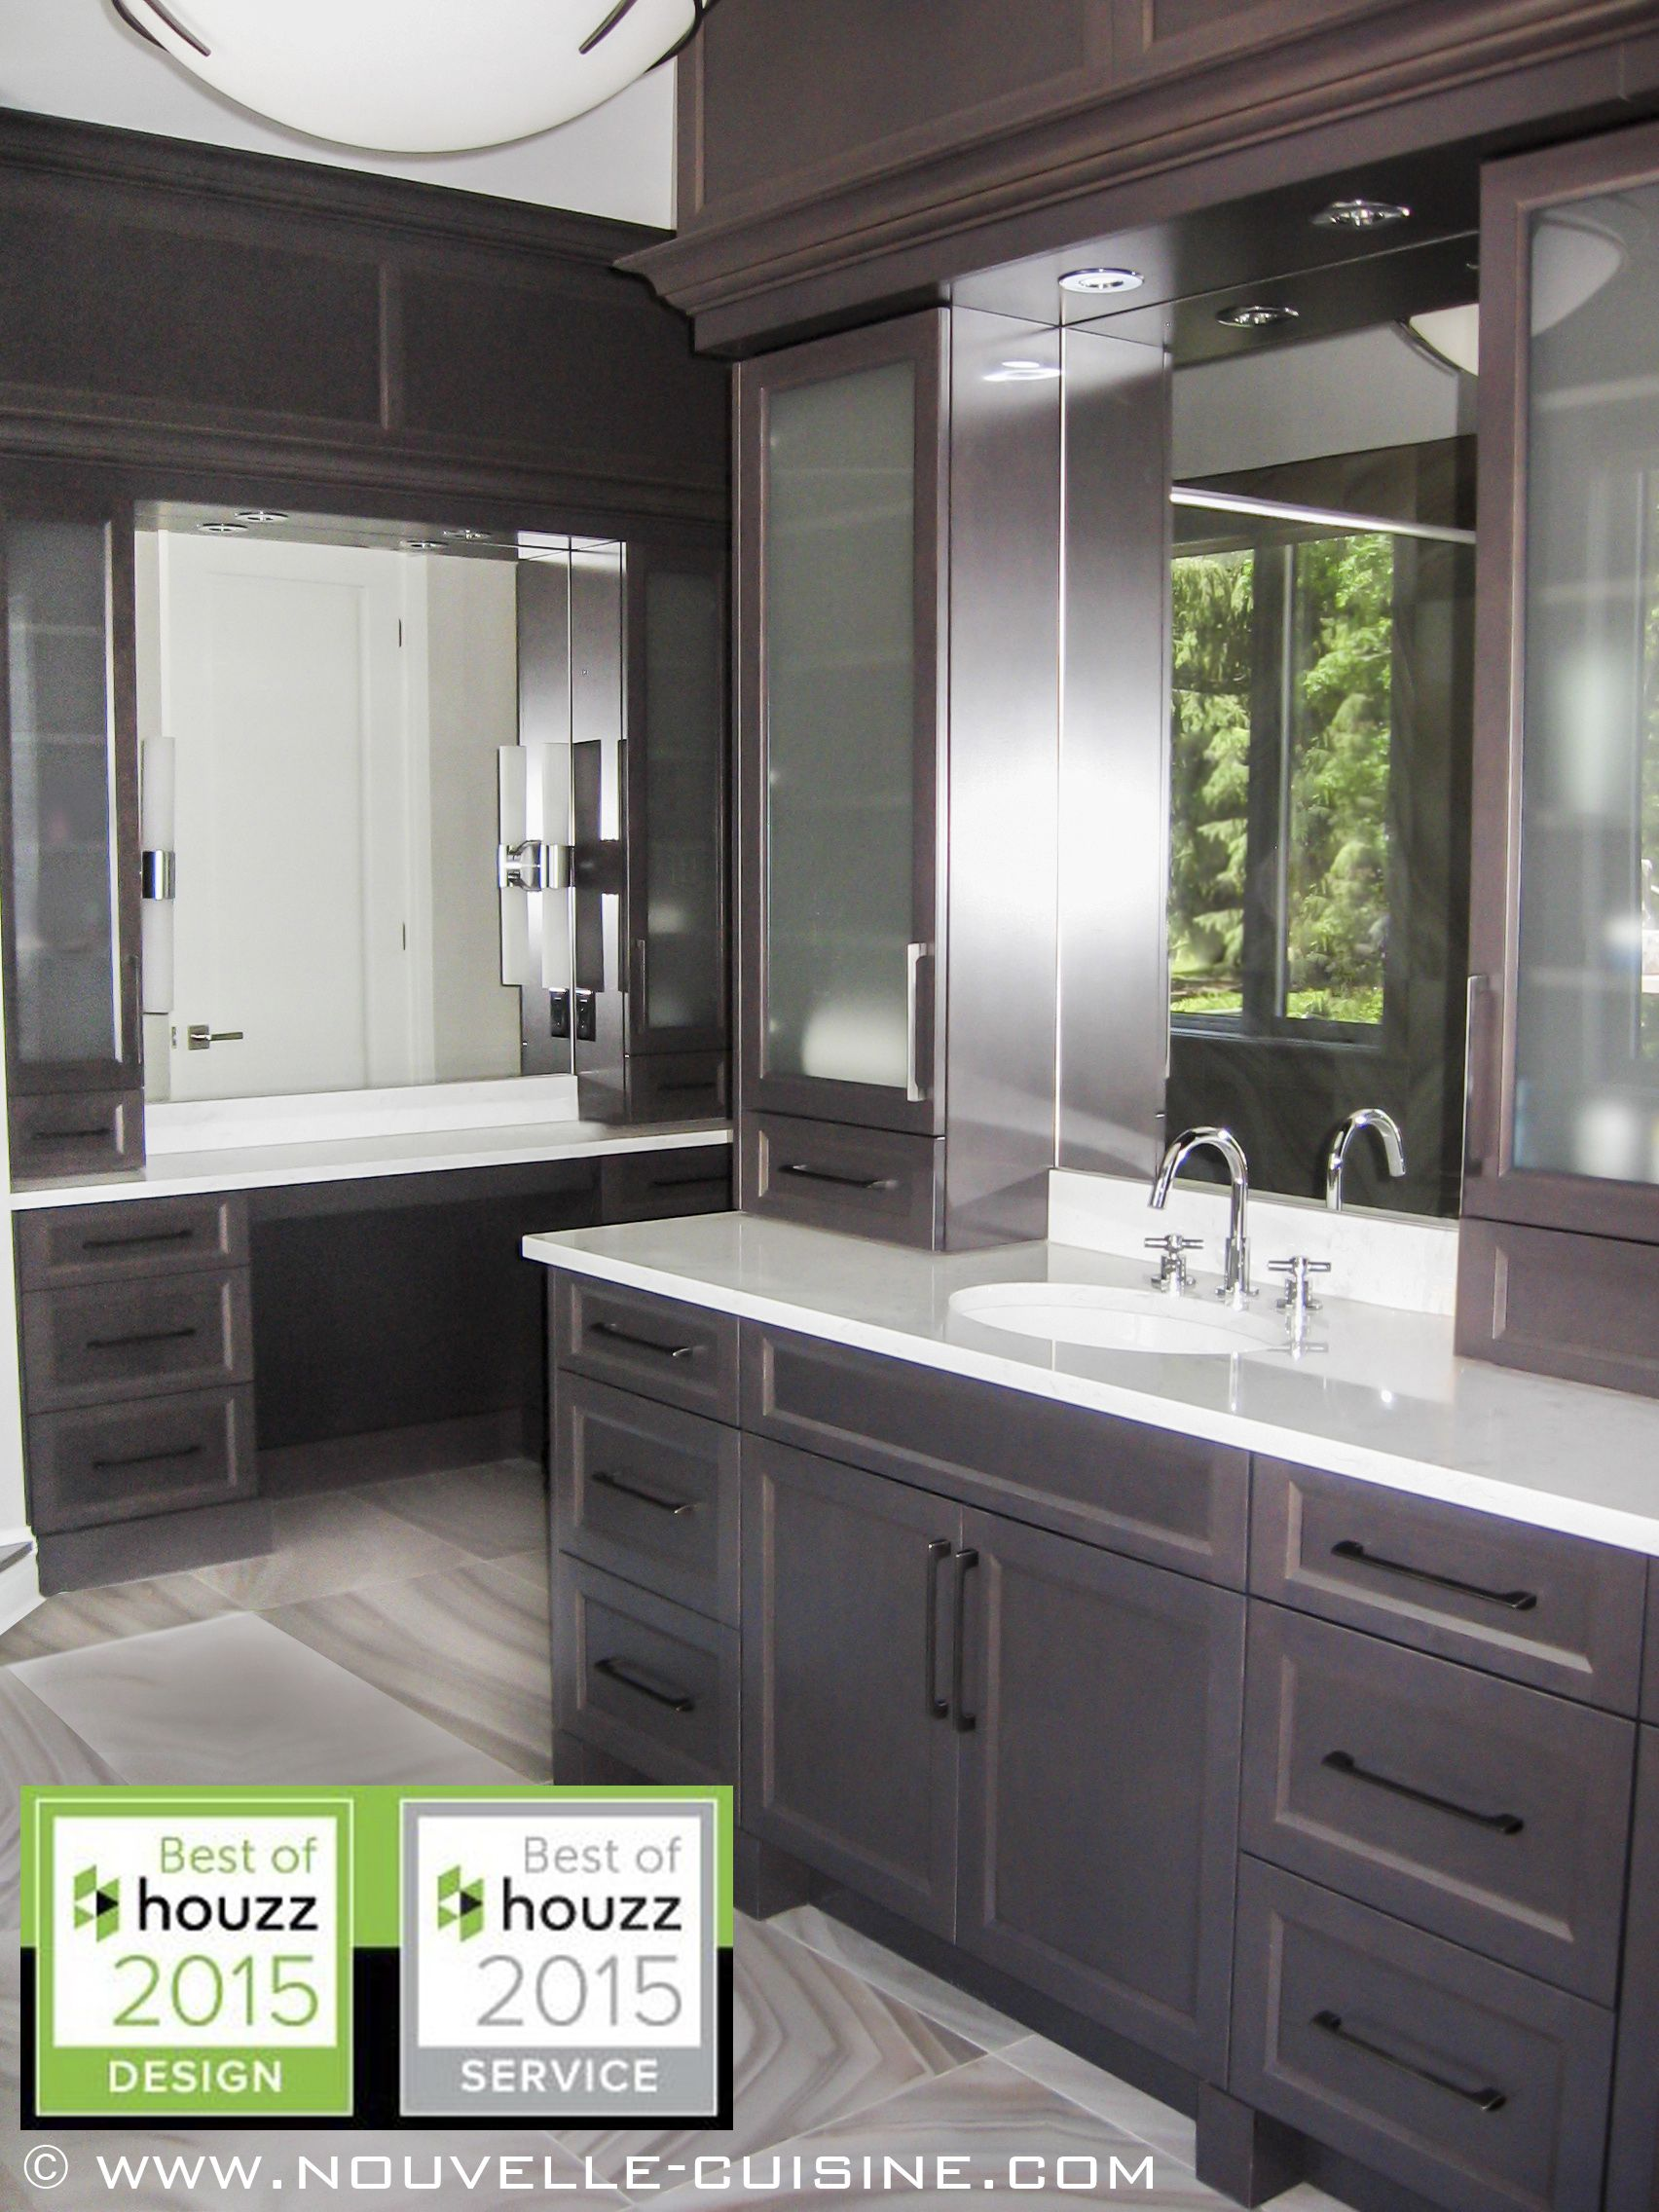 An elegant bathroom with dark cabinets and